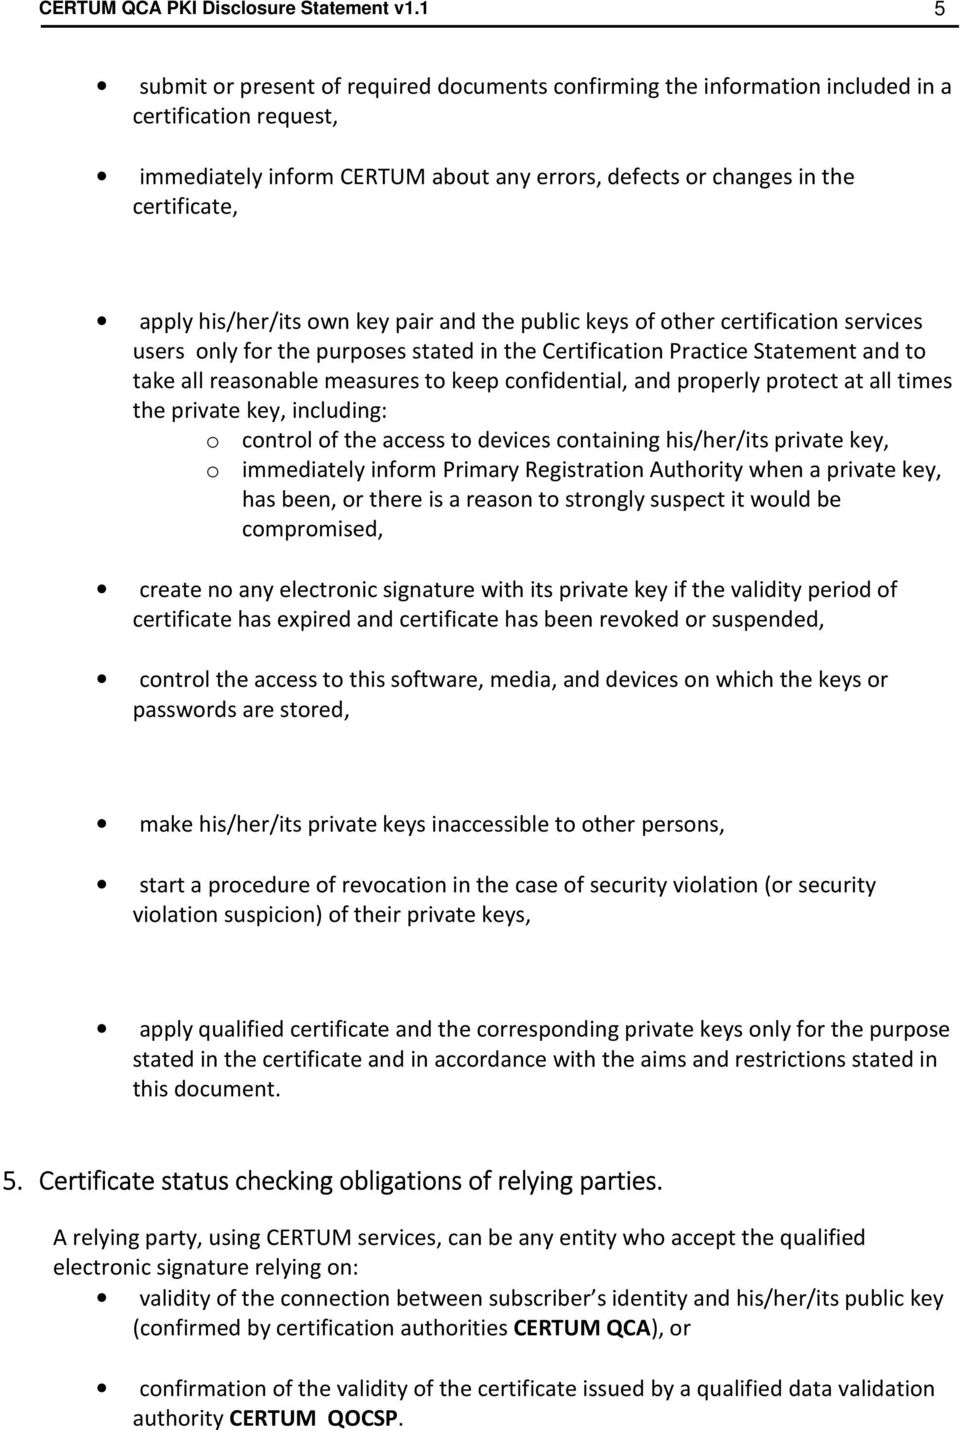 his/her/its own key pair and the public keys of other certification services users only for the purposes stated in the Certification Practice Statement and to take all reasonable measures to keep